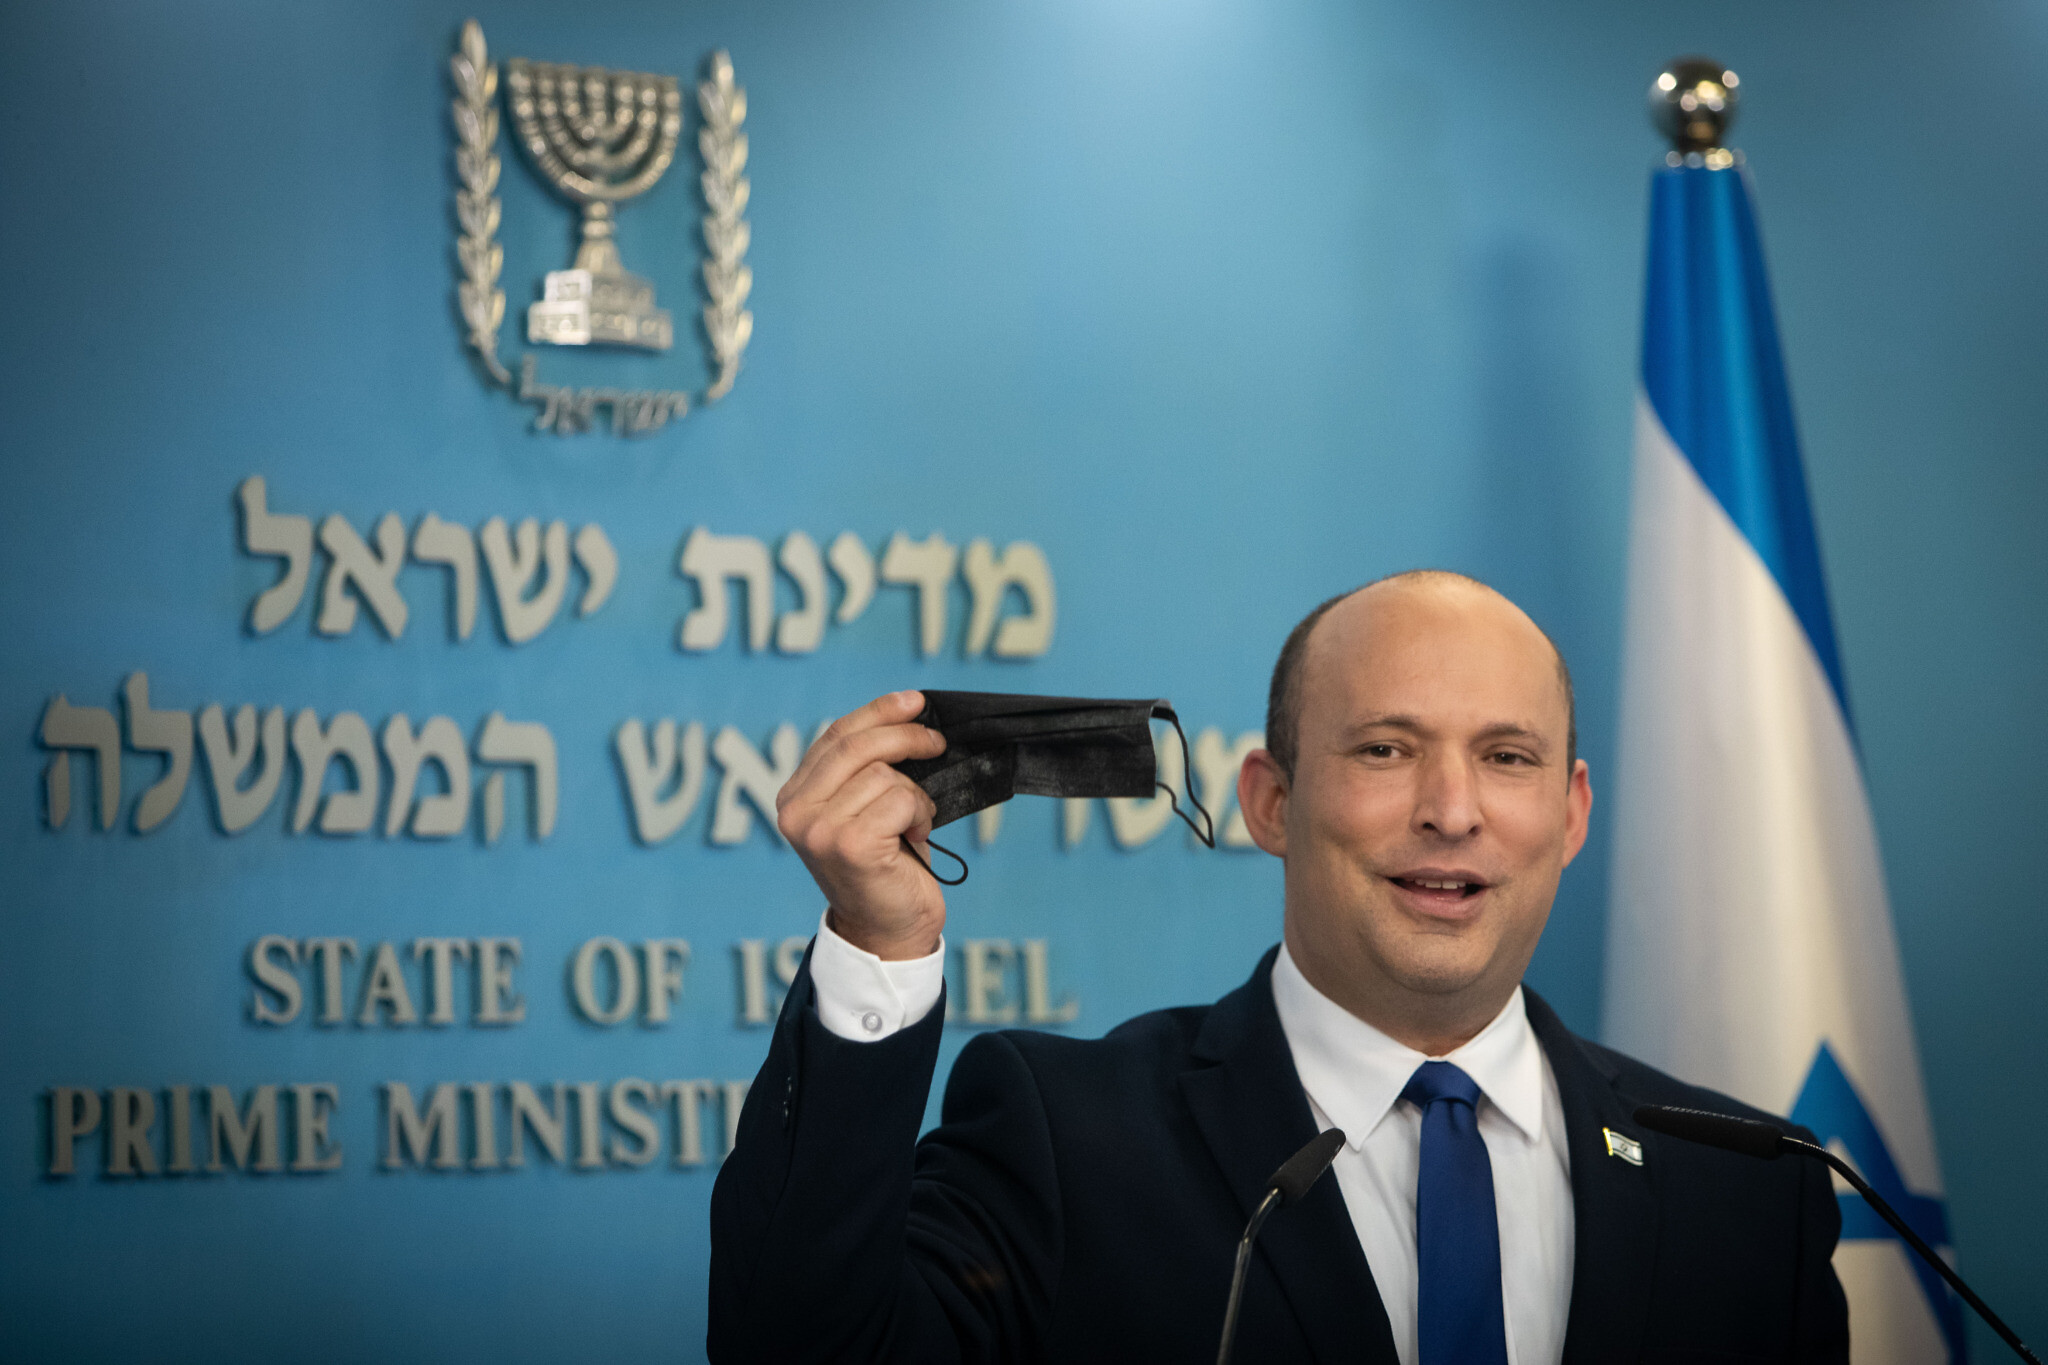 Bennett consider the Palestinian statehood dream as a 'terrible mistake'